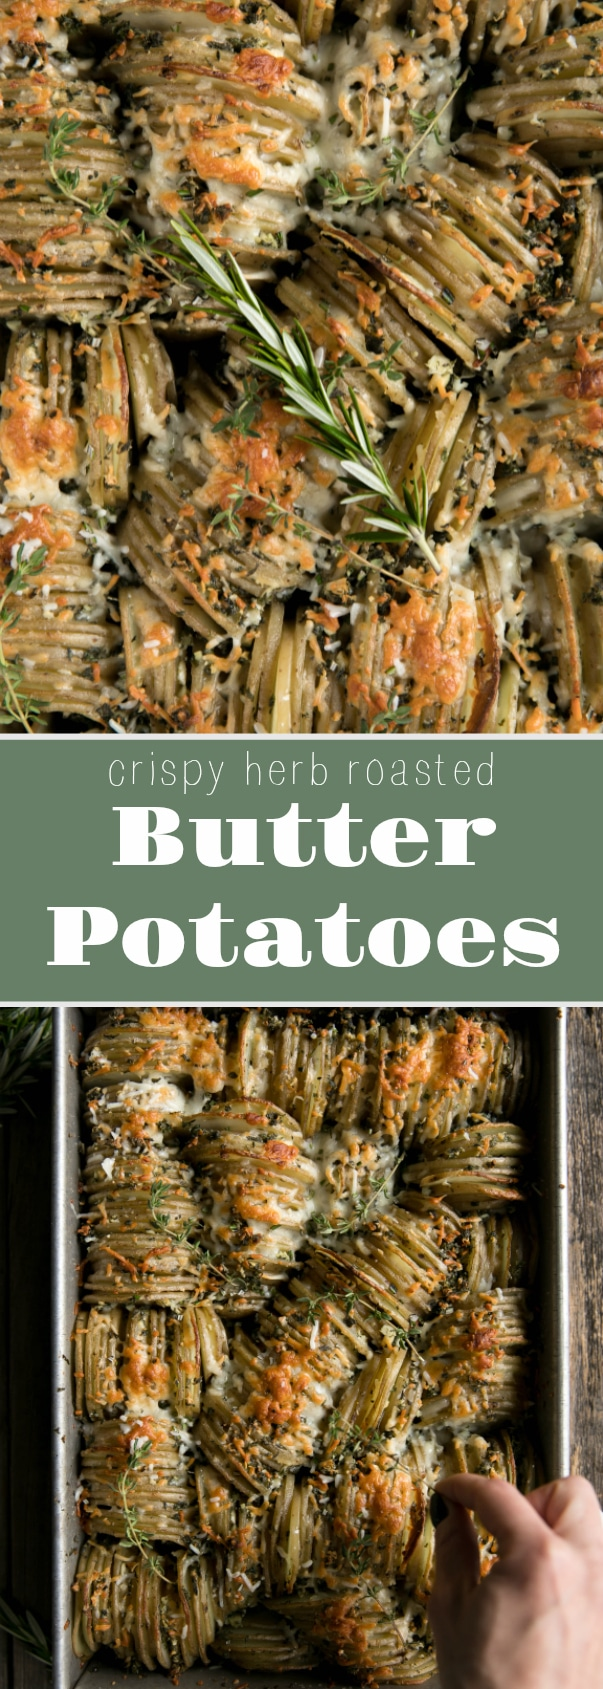 Crispy Herb Roasted Butter Potatoes via @theforkedspoon #potatoes #sidedish #butter #herbs #crispypotatoes #theforkedspoon